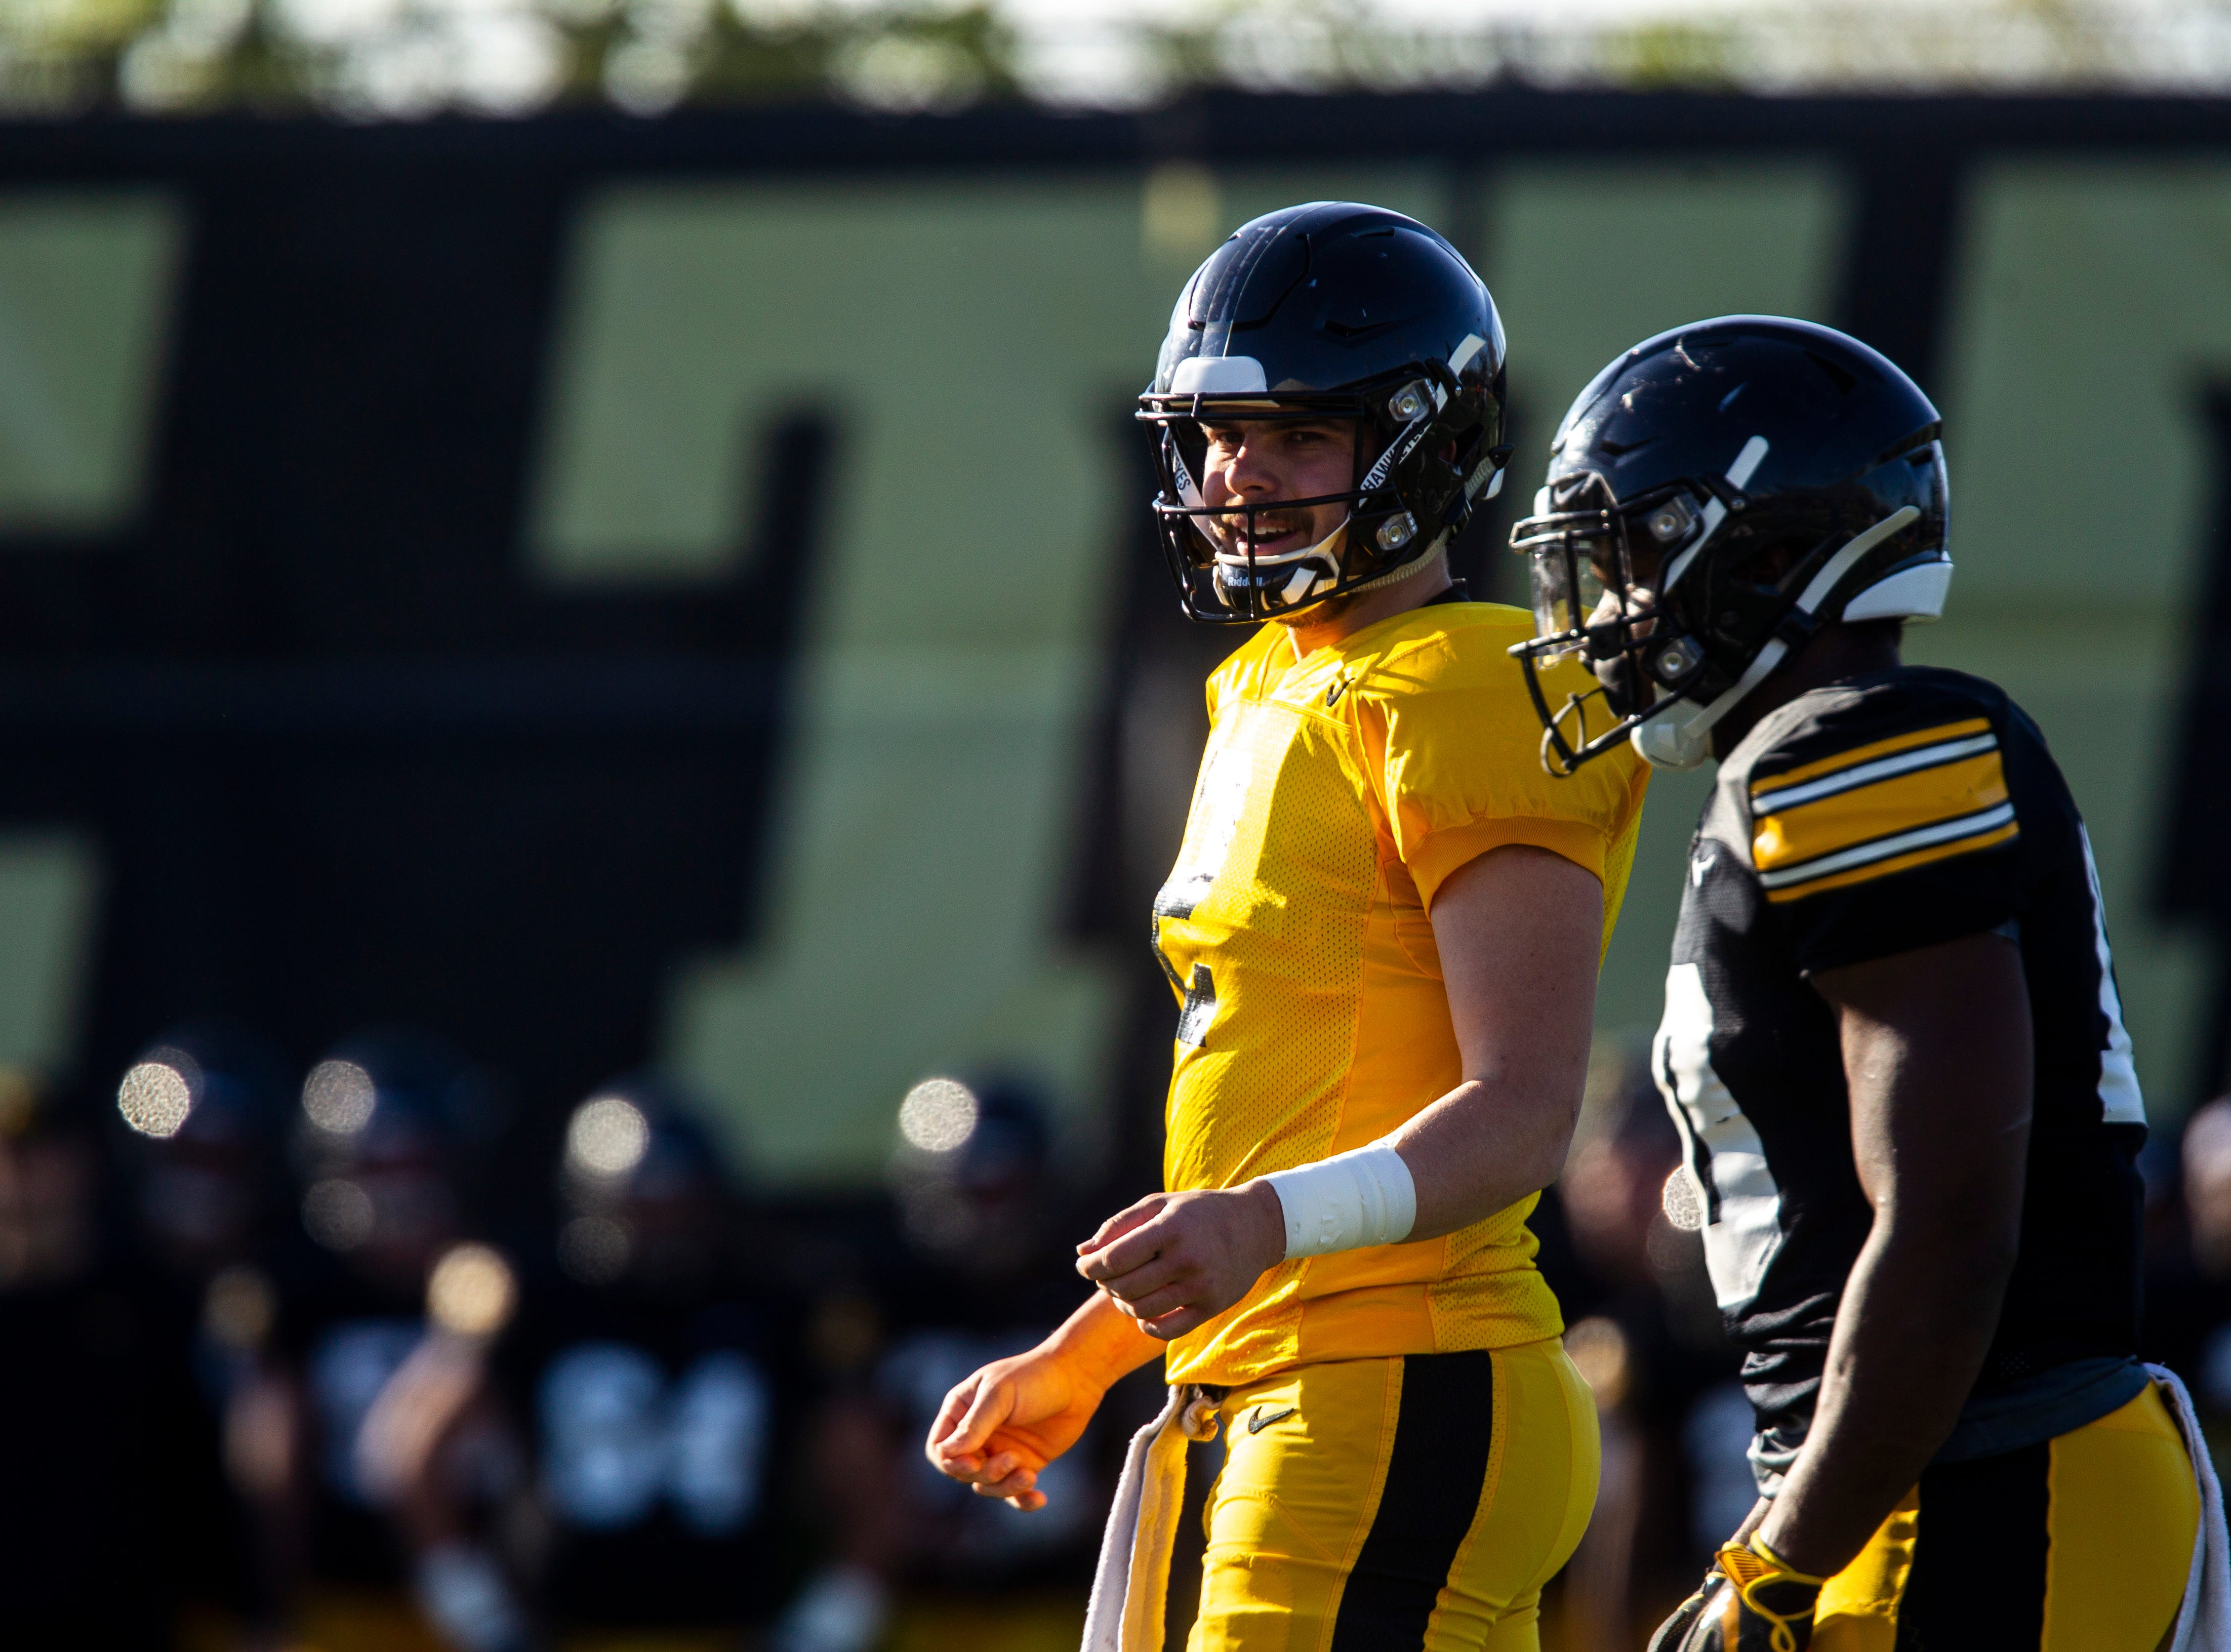 Iowa quarterback Peyton Mansell (2) lines up with Mekhi Sargent during the final spring football practice, Friday, April 26, 2019, at the University of Iowa outdoor practice facility in Iowa City, Iowa.